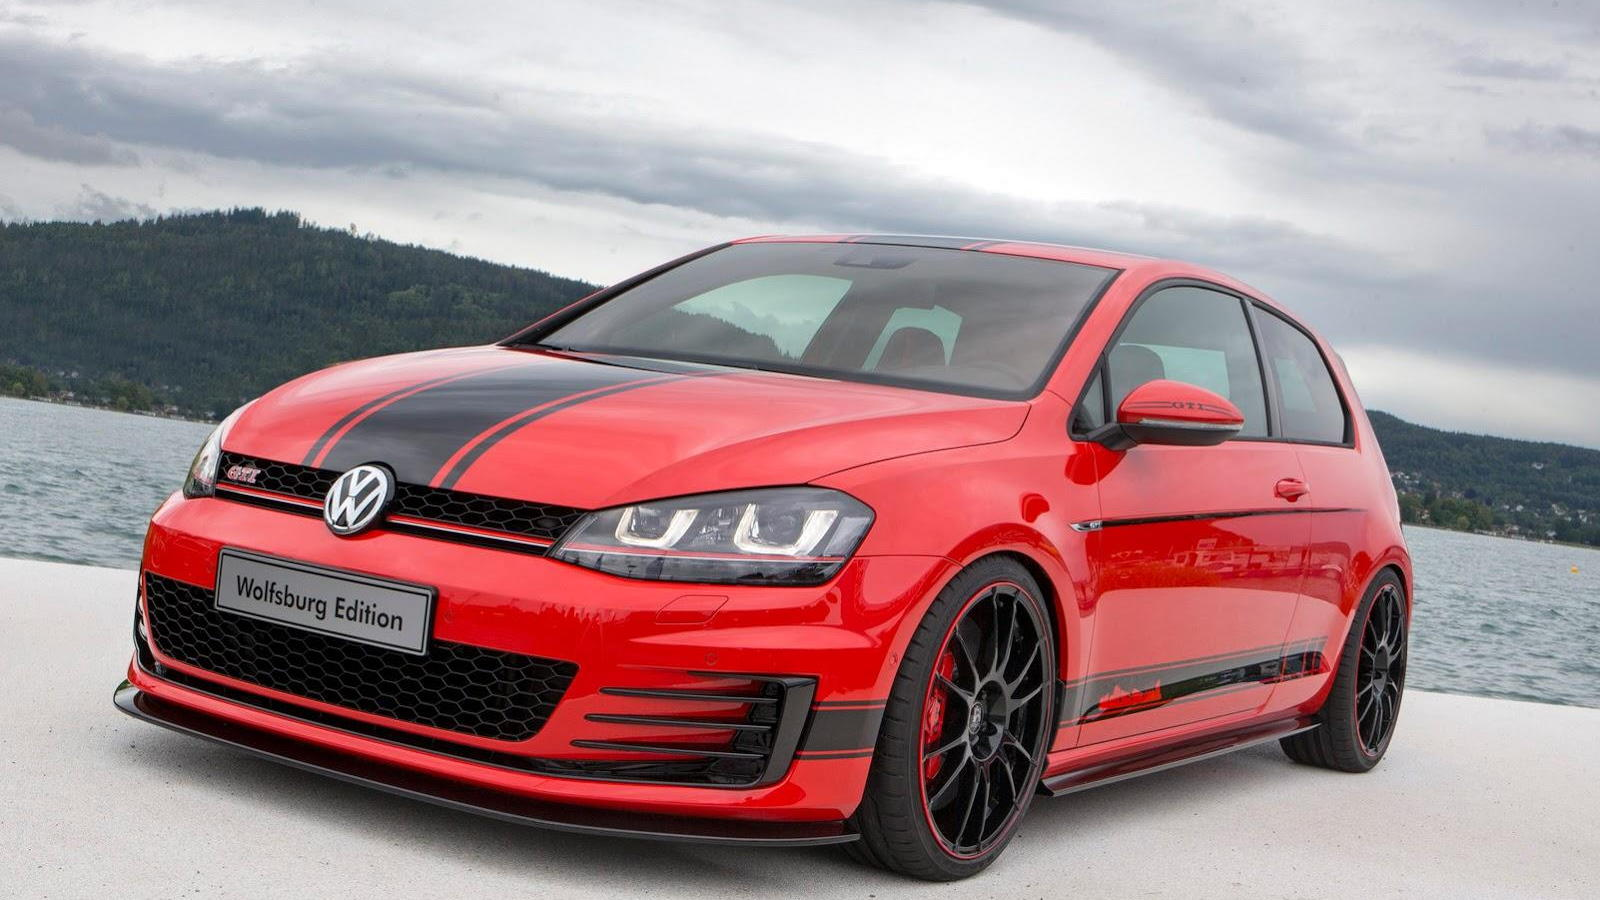 Volkswagen Golf GTI Wolfsburg Edition at Wörthersee 2014